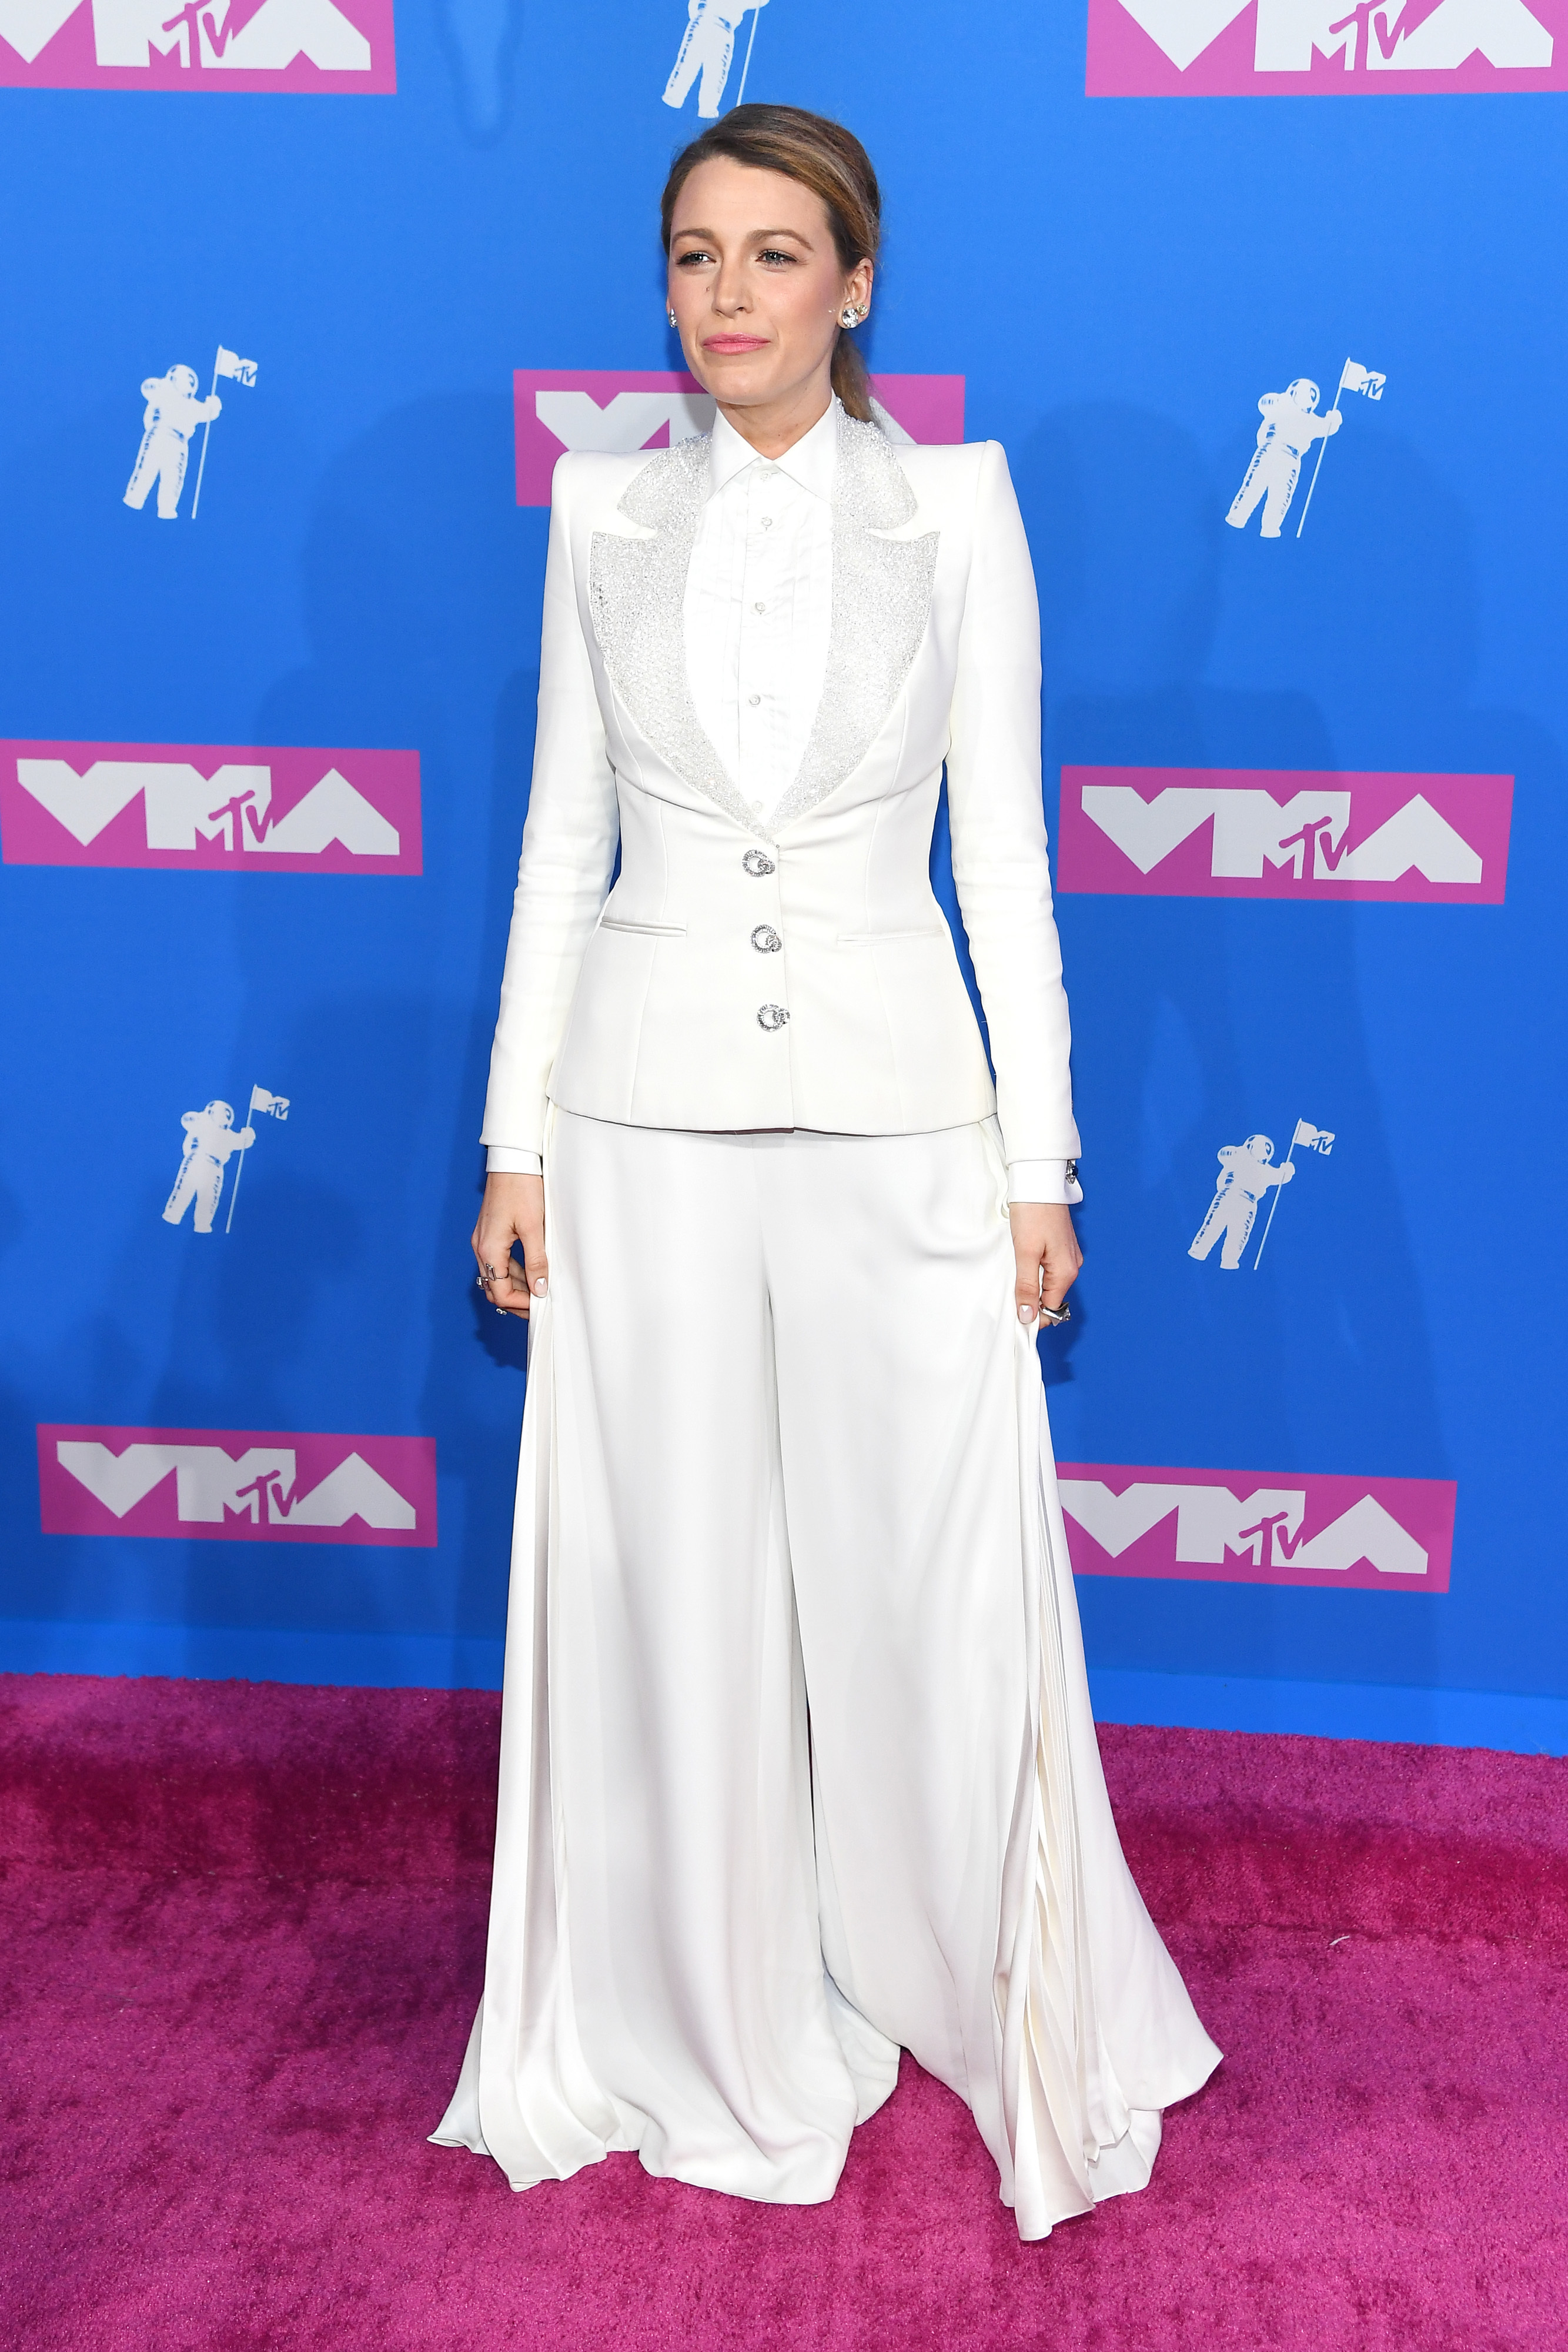 df76e33693 Fashion hits and misses from the 2018 MTV VMAs